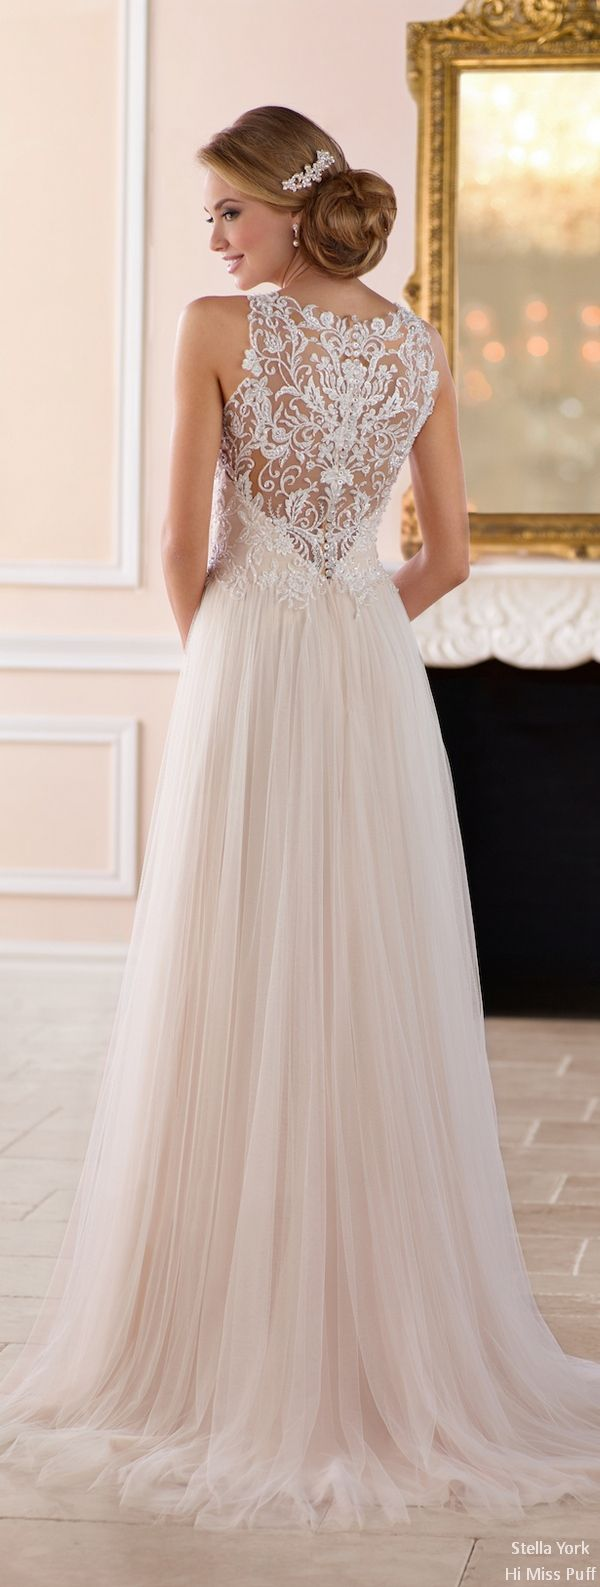 Elegance Of   Wedding Dresses : Best bridal collection ideas on